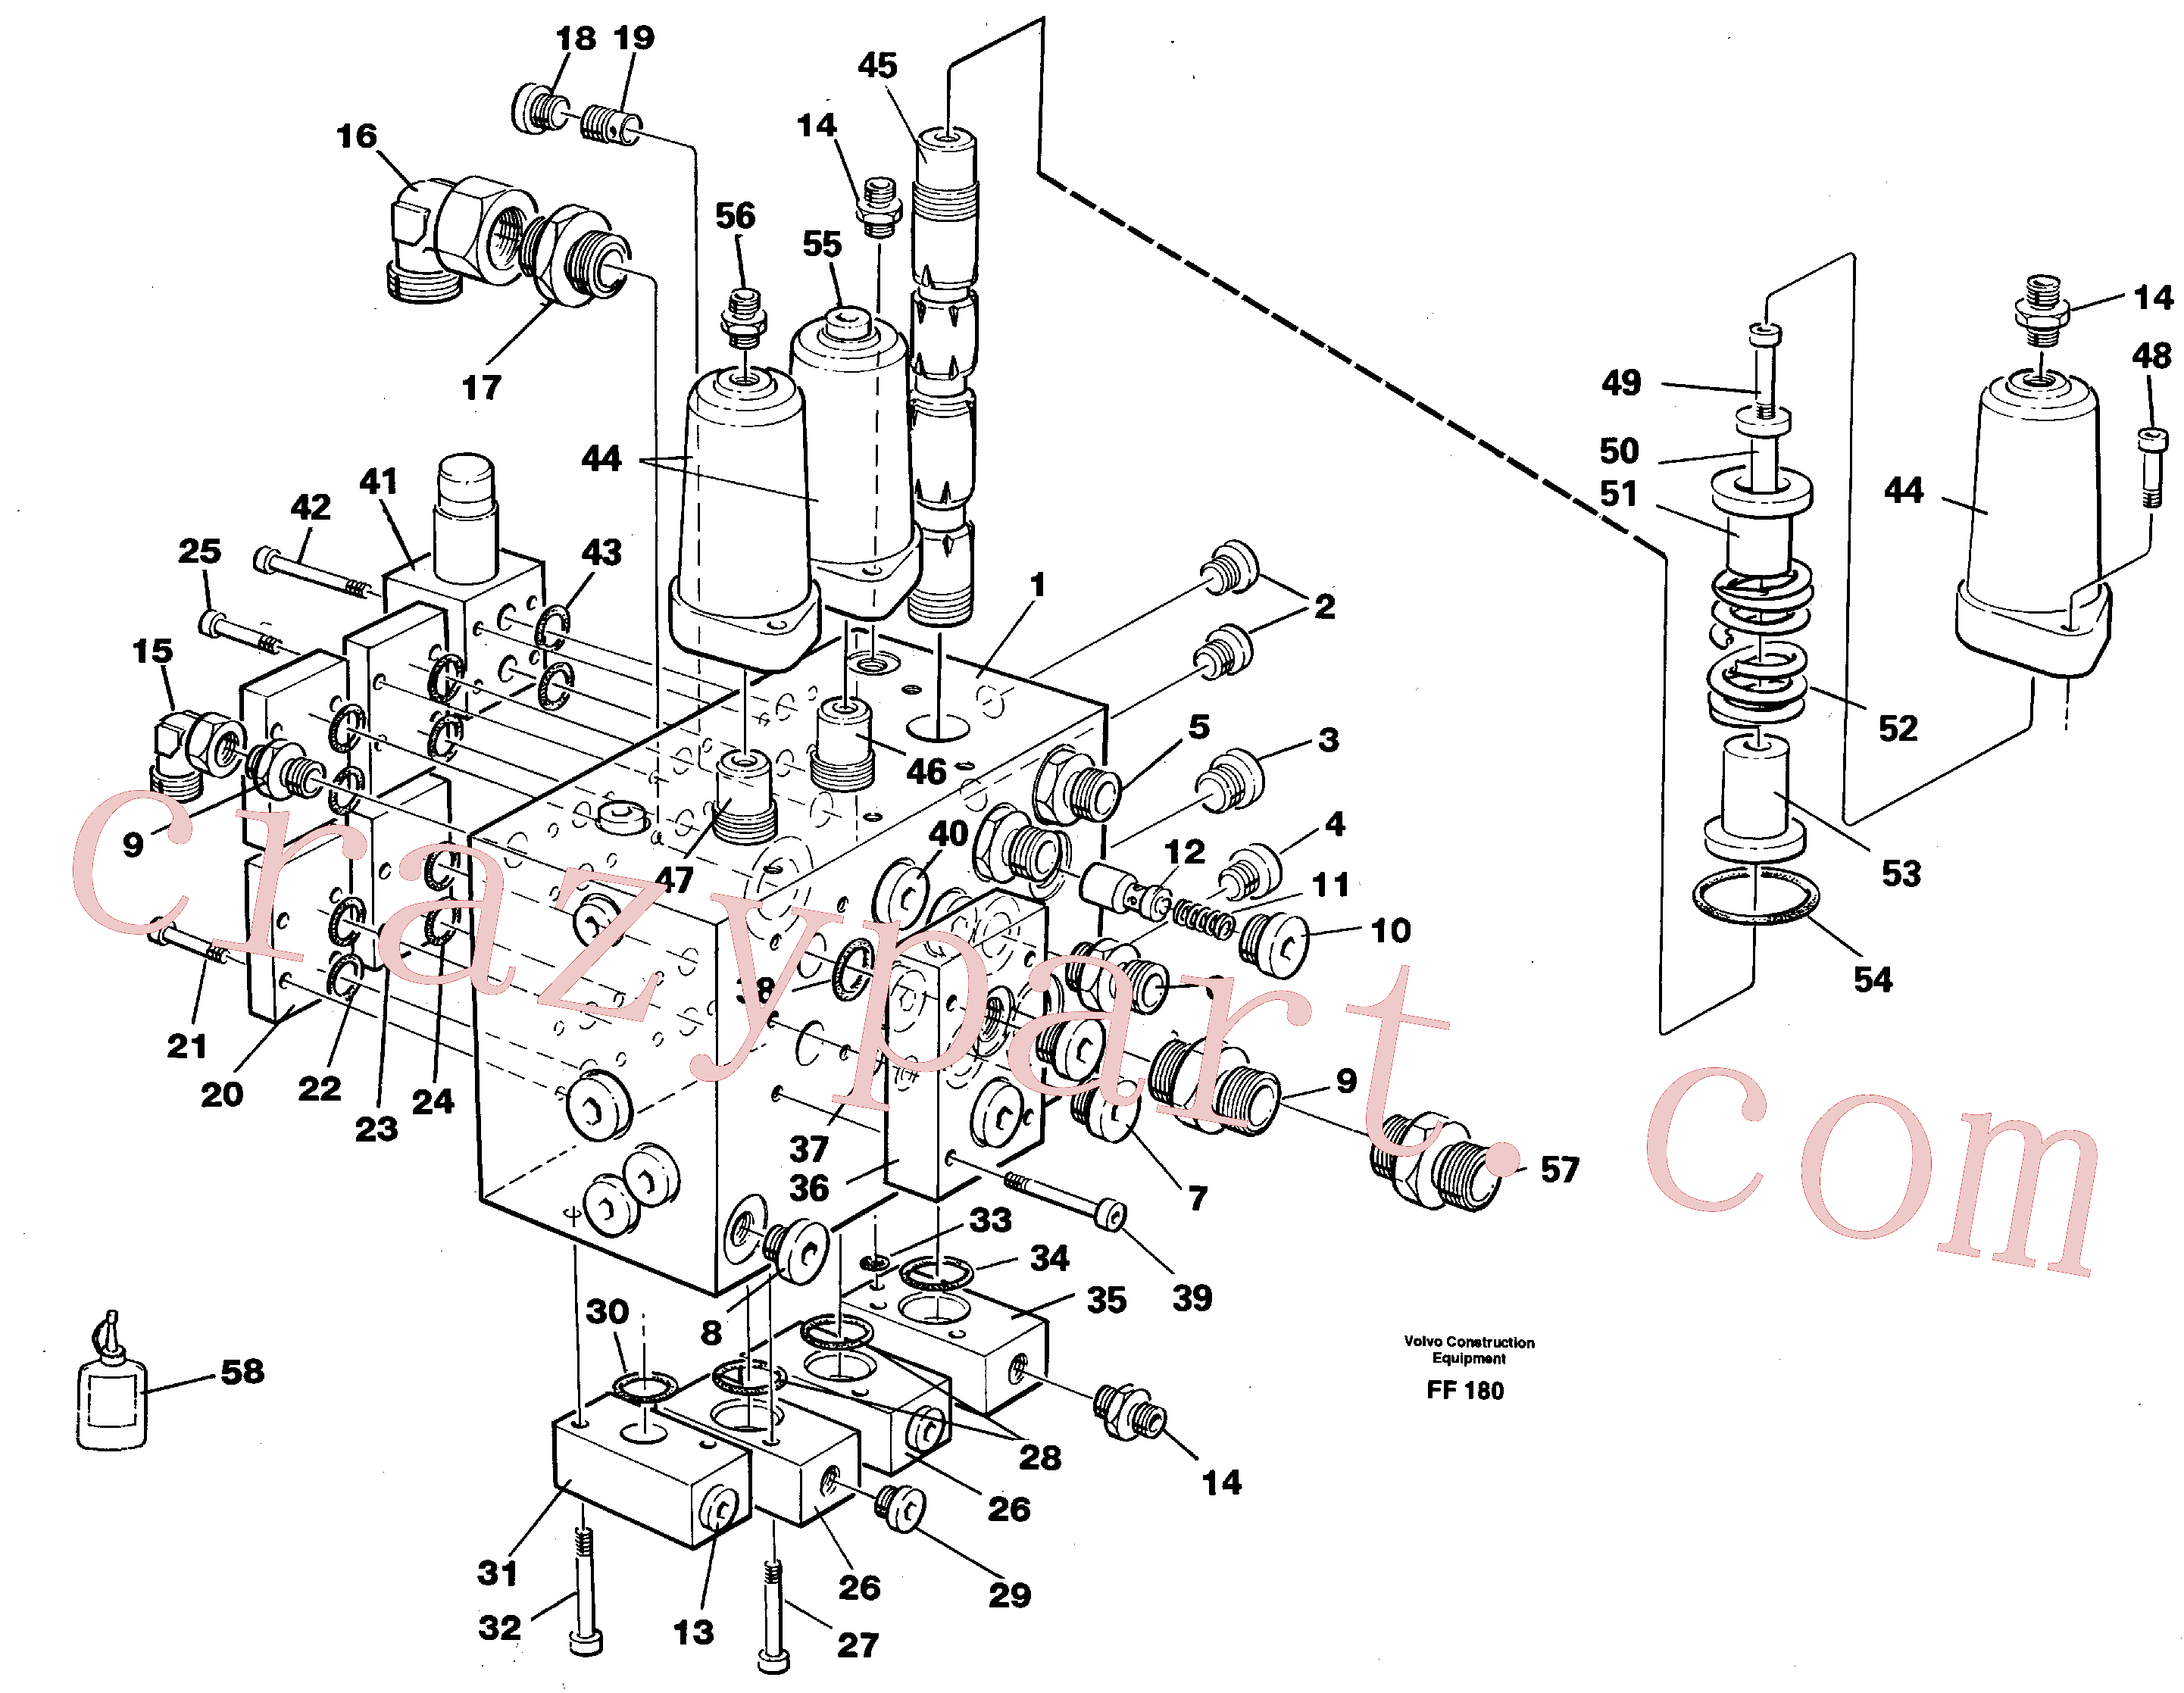 VOE14213280 for Volvo Slew valve assembly(FF180 assembly)